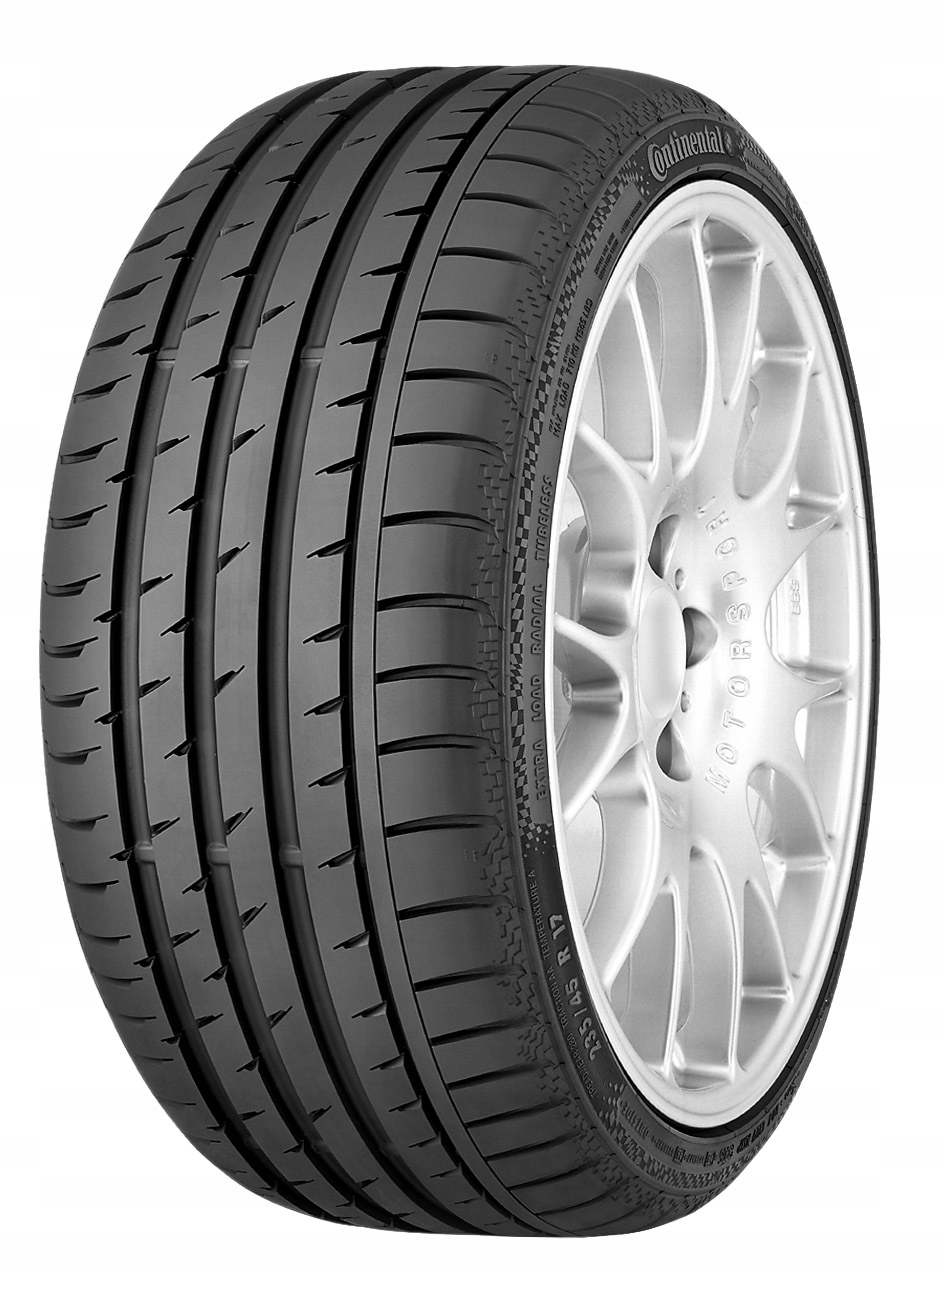 1x Continental ContiSportContact 3 195/45 R16 80V